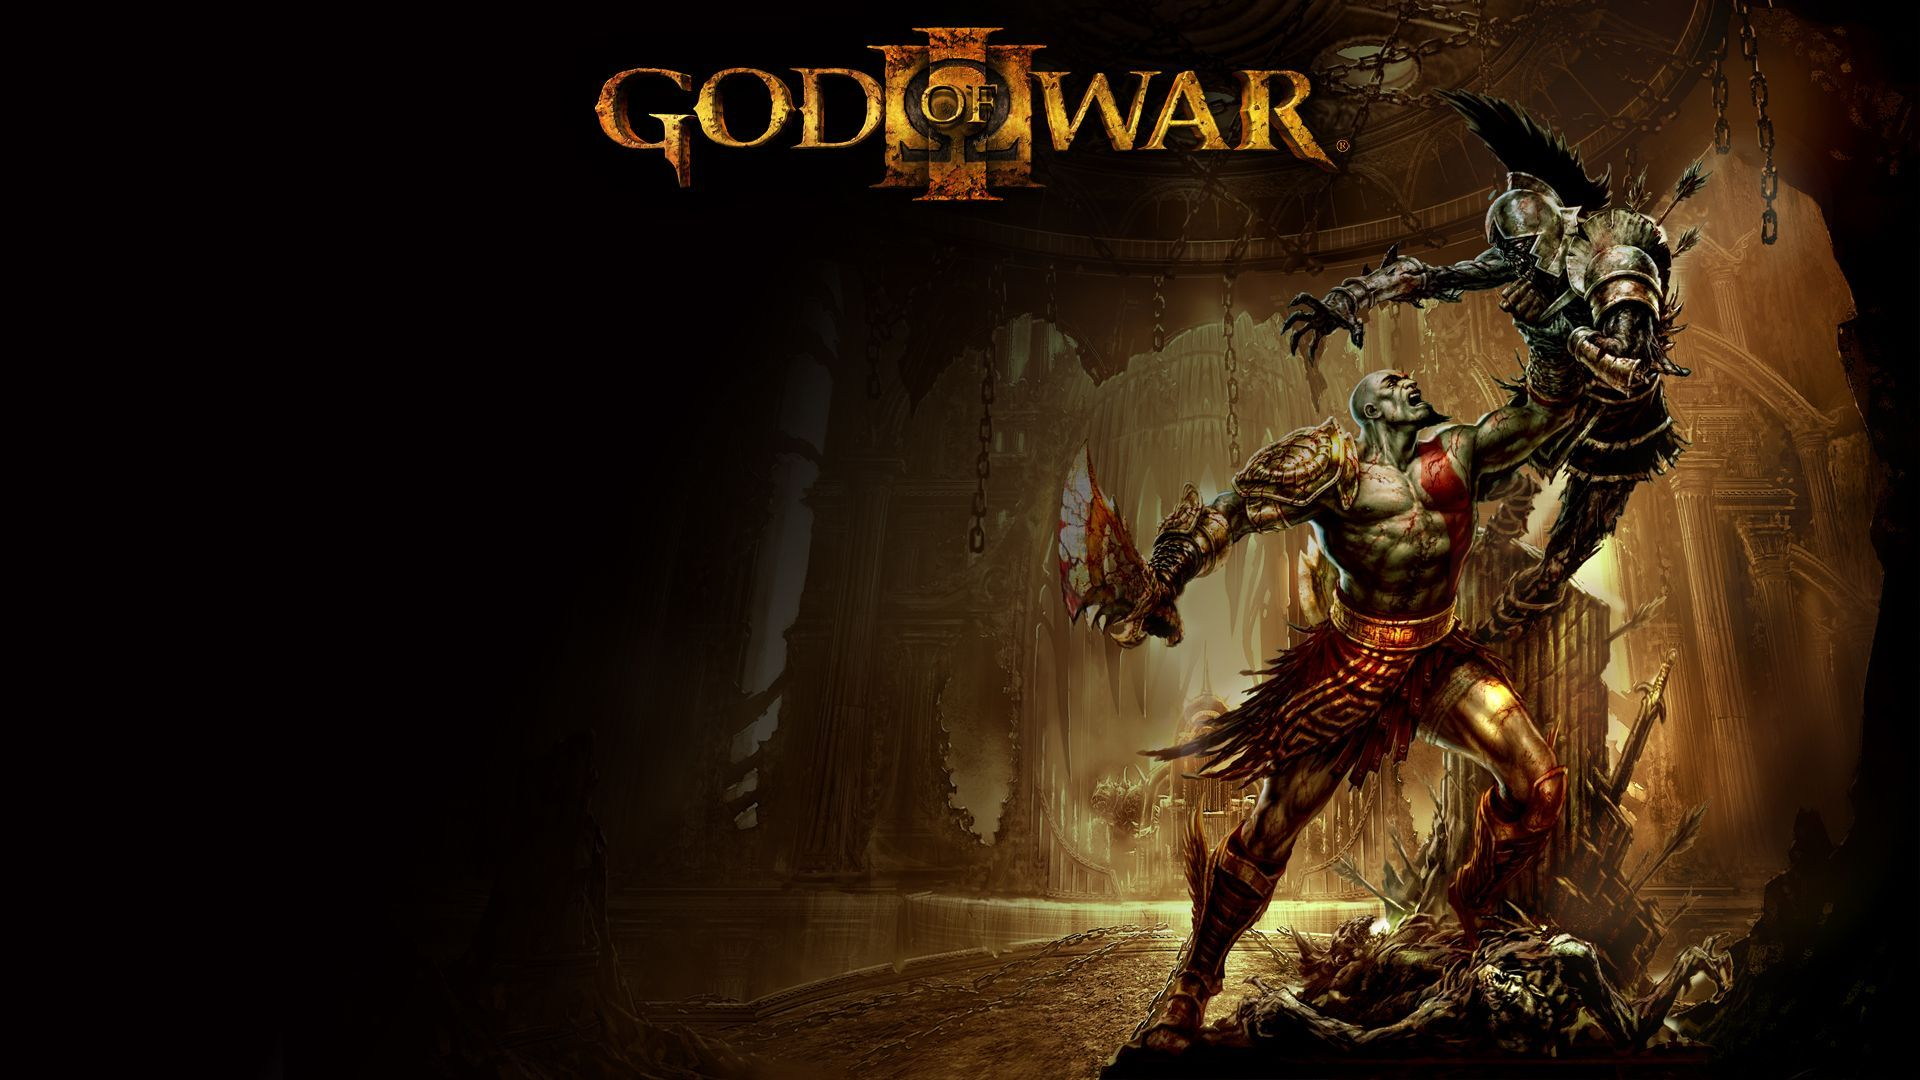 God of war ascension wallpaper wallpapers for desktop god of war ascension wallpaper voltagebd Image collections